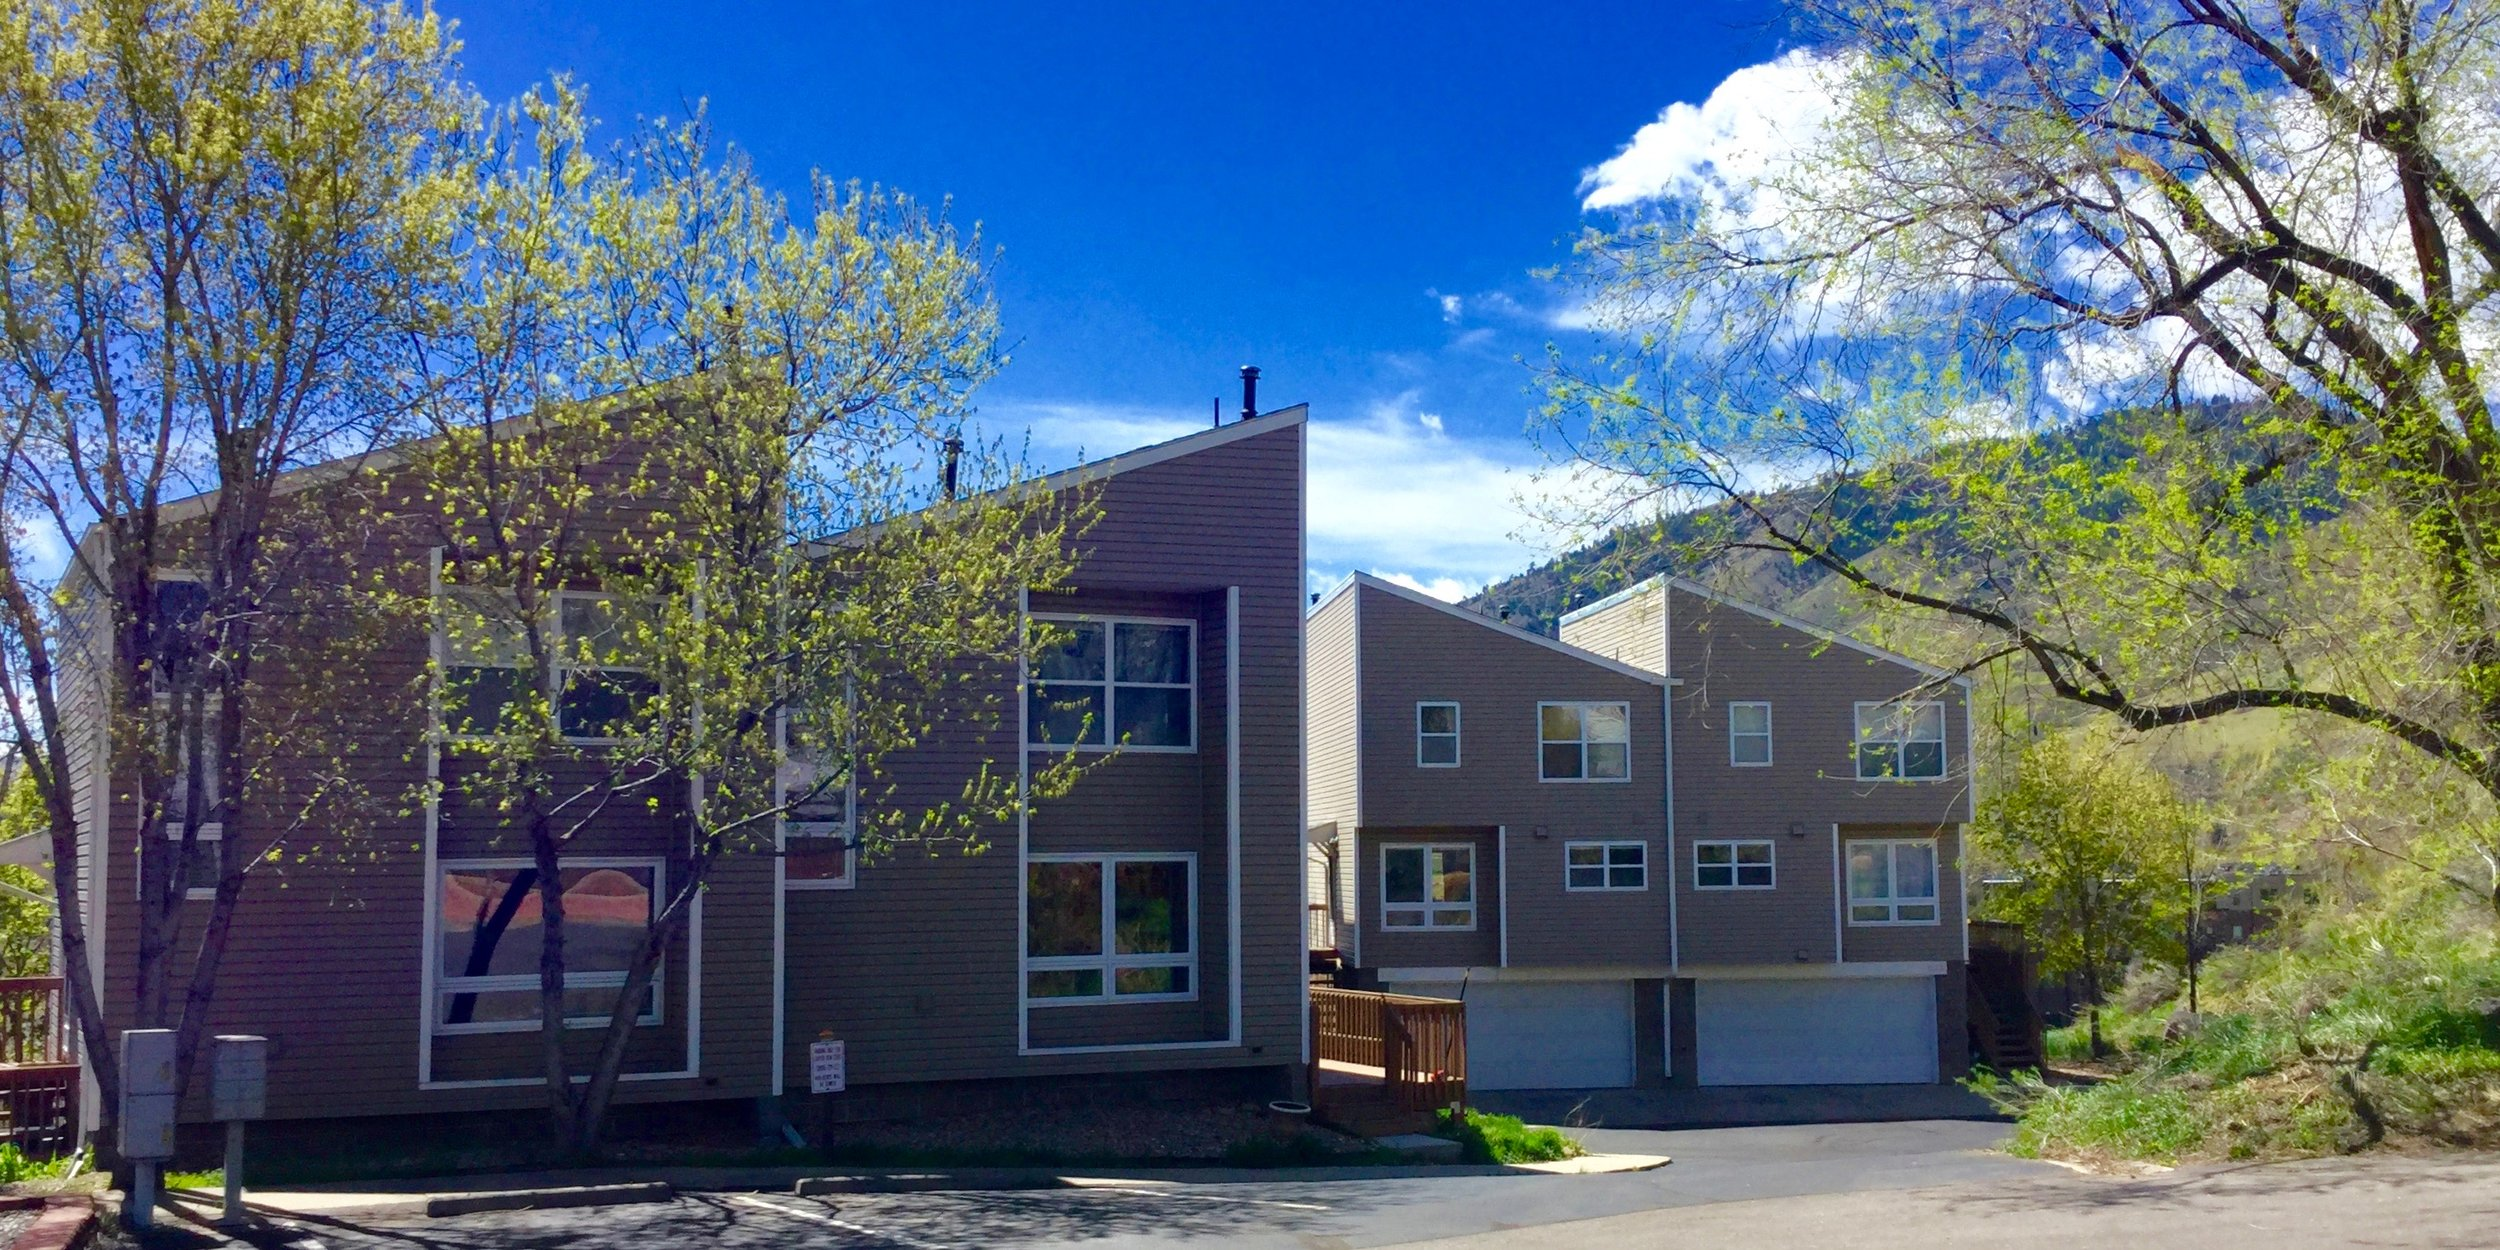 8 gorgeous Townhomes overlooking Lions Park and downtown Golden, Colorado